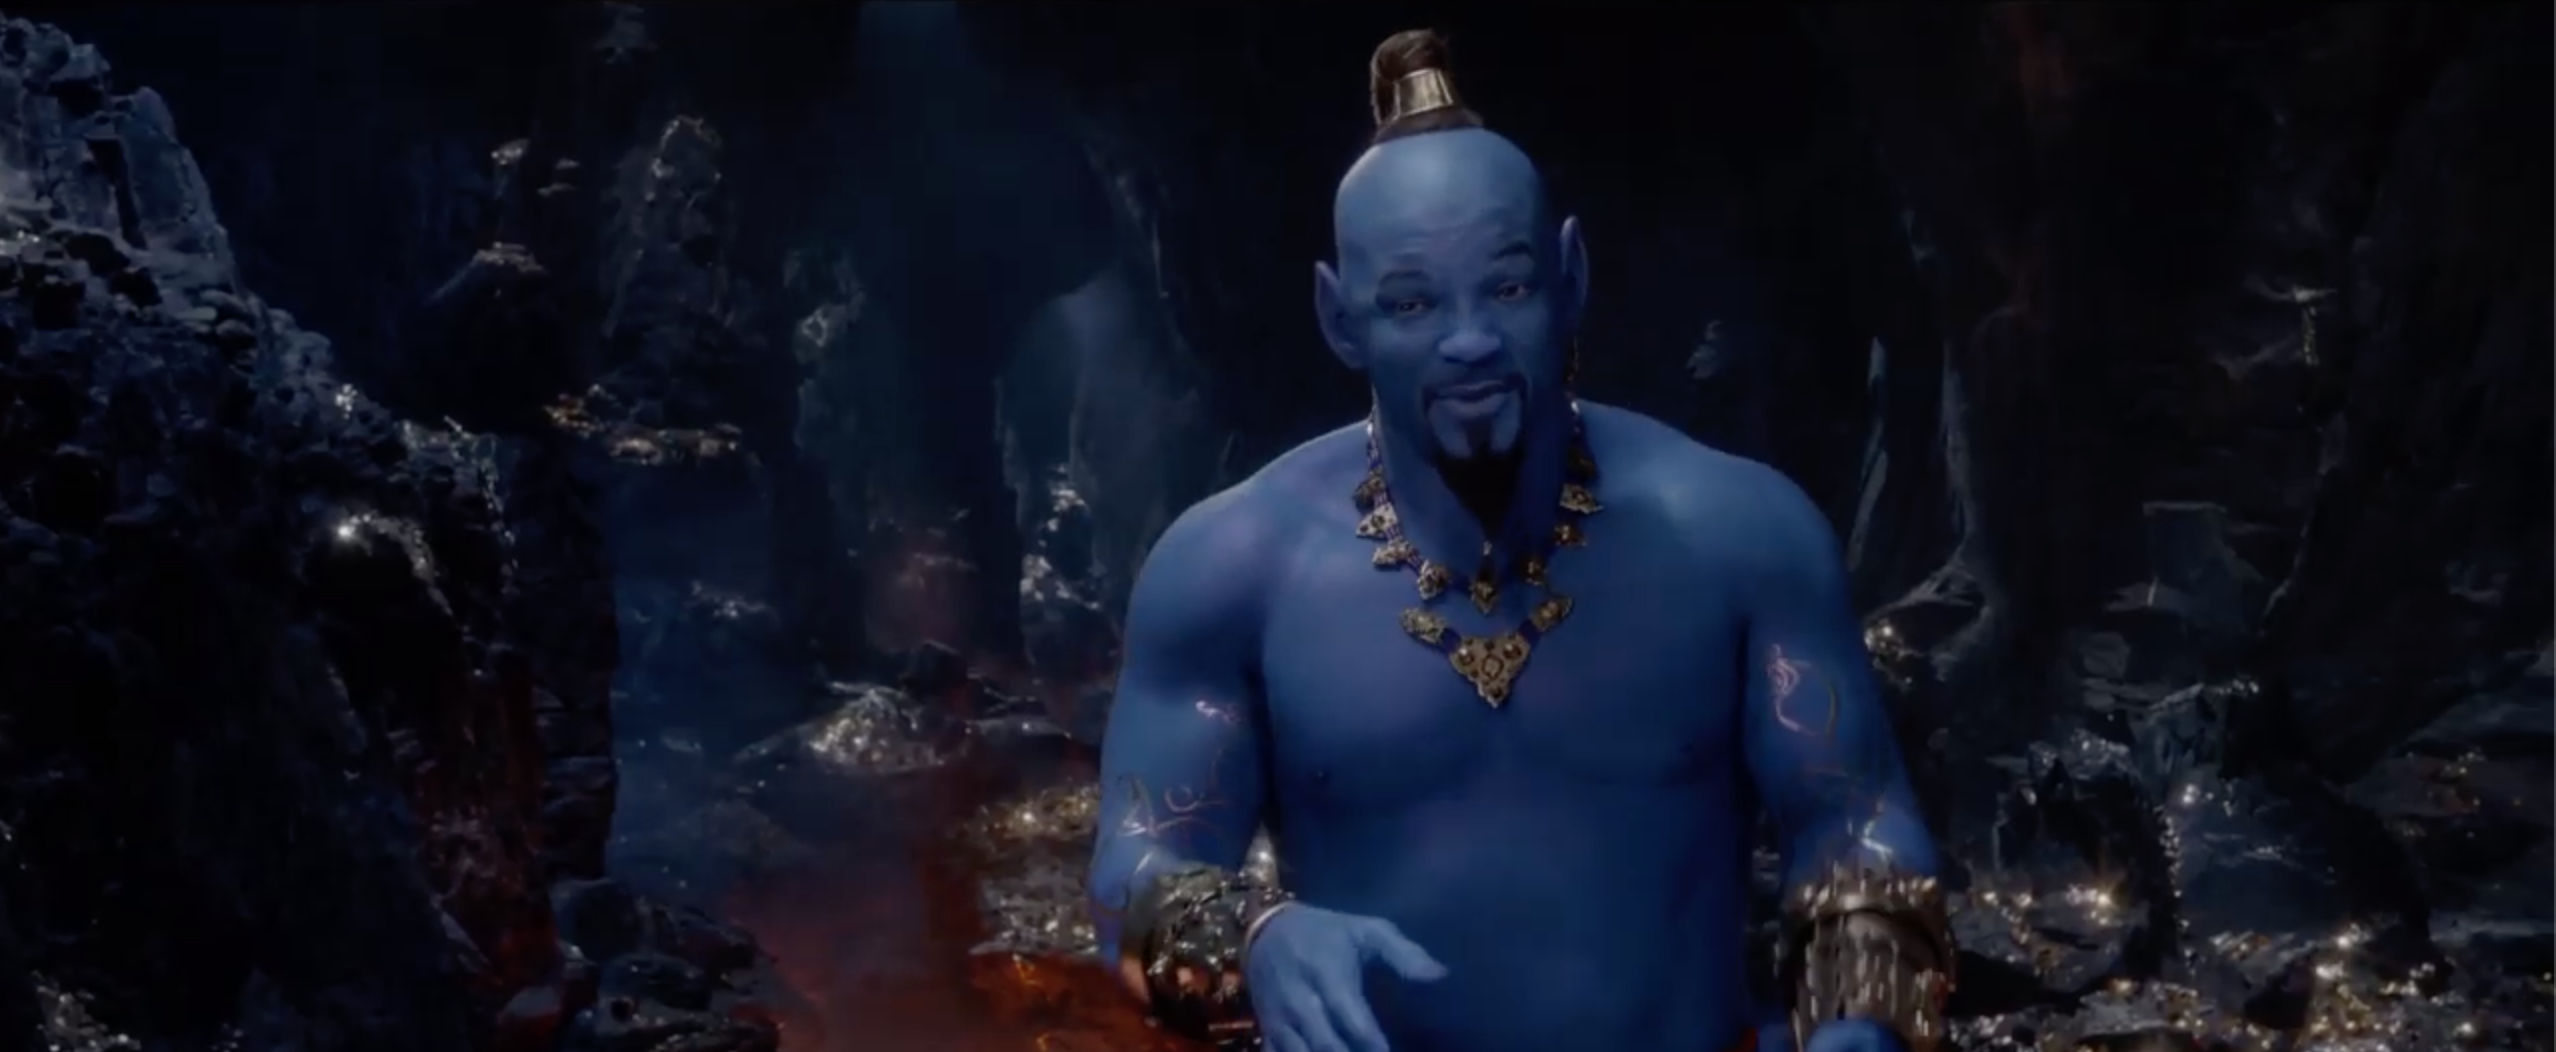 This is Will Smith's Genie. Credit: Disney